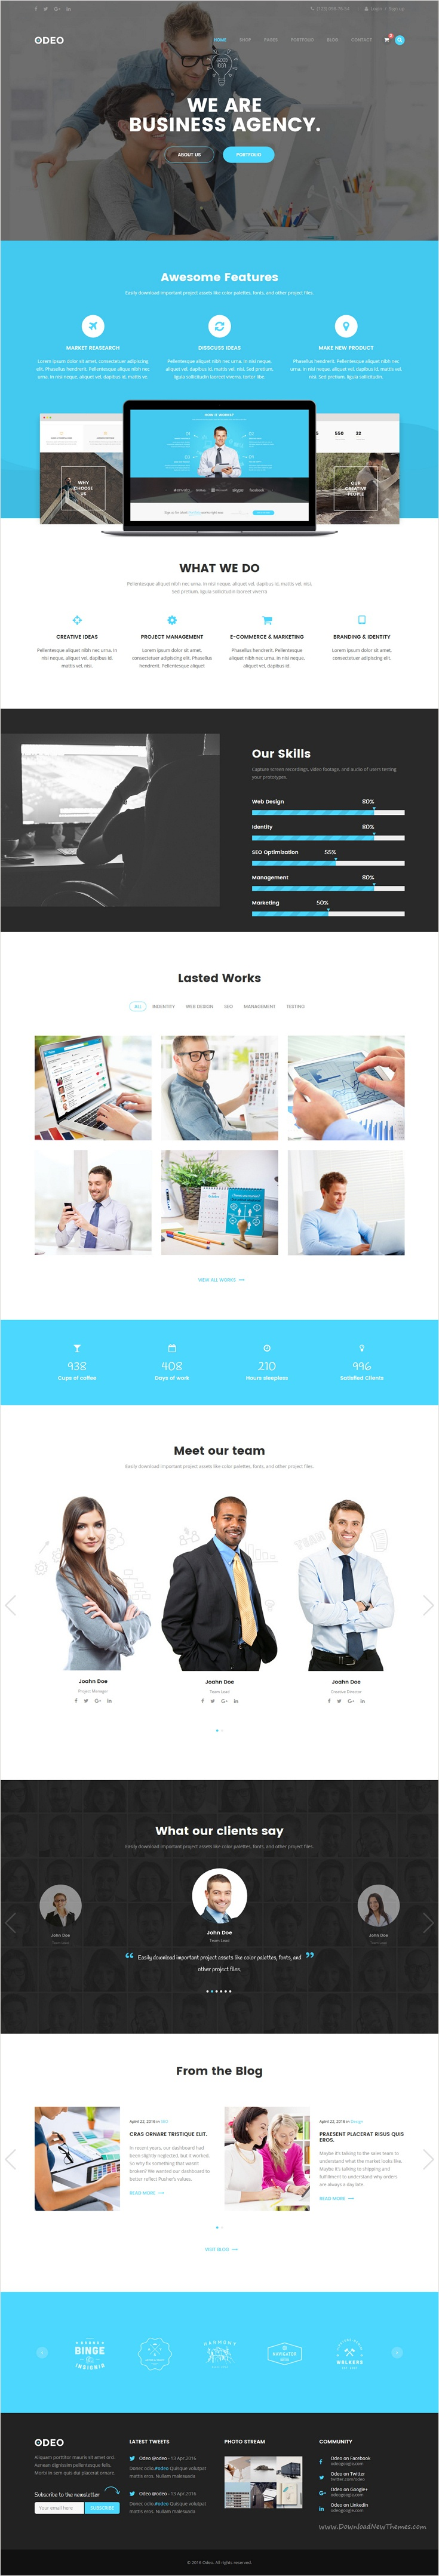 Odeo is a clean and professional 10 in 1 bootstrap #HTML #theme for Business, Photo Studio, #Freelancers, Portfolio, Personal, Medicine, Travel, Creative Agency, Corporate, Blog, Interior or eCommerce website download now➩ https://themeforest.net/item/odeo-multipurpose-business-html-template/18545321?ref=Datasata